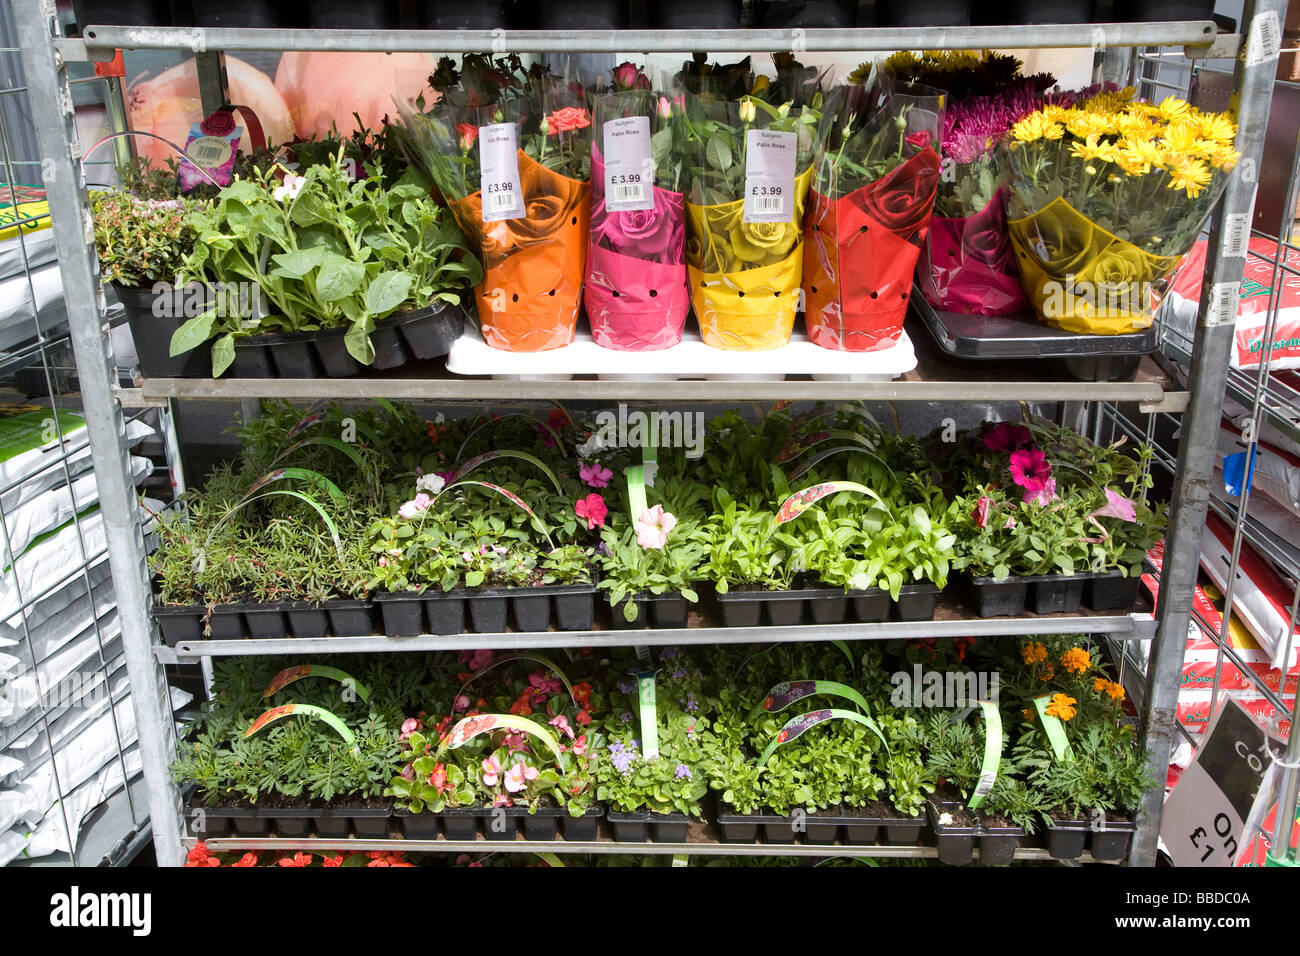 Selection of potted plants on display - Stock Image